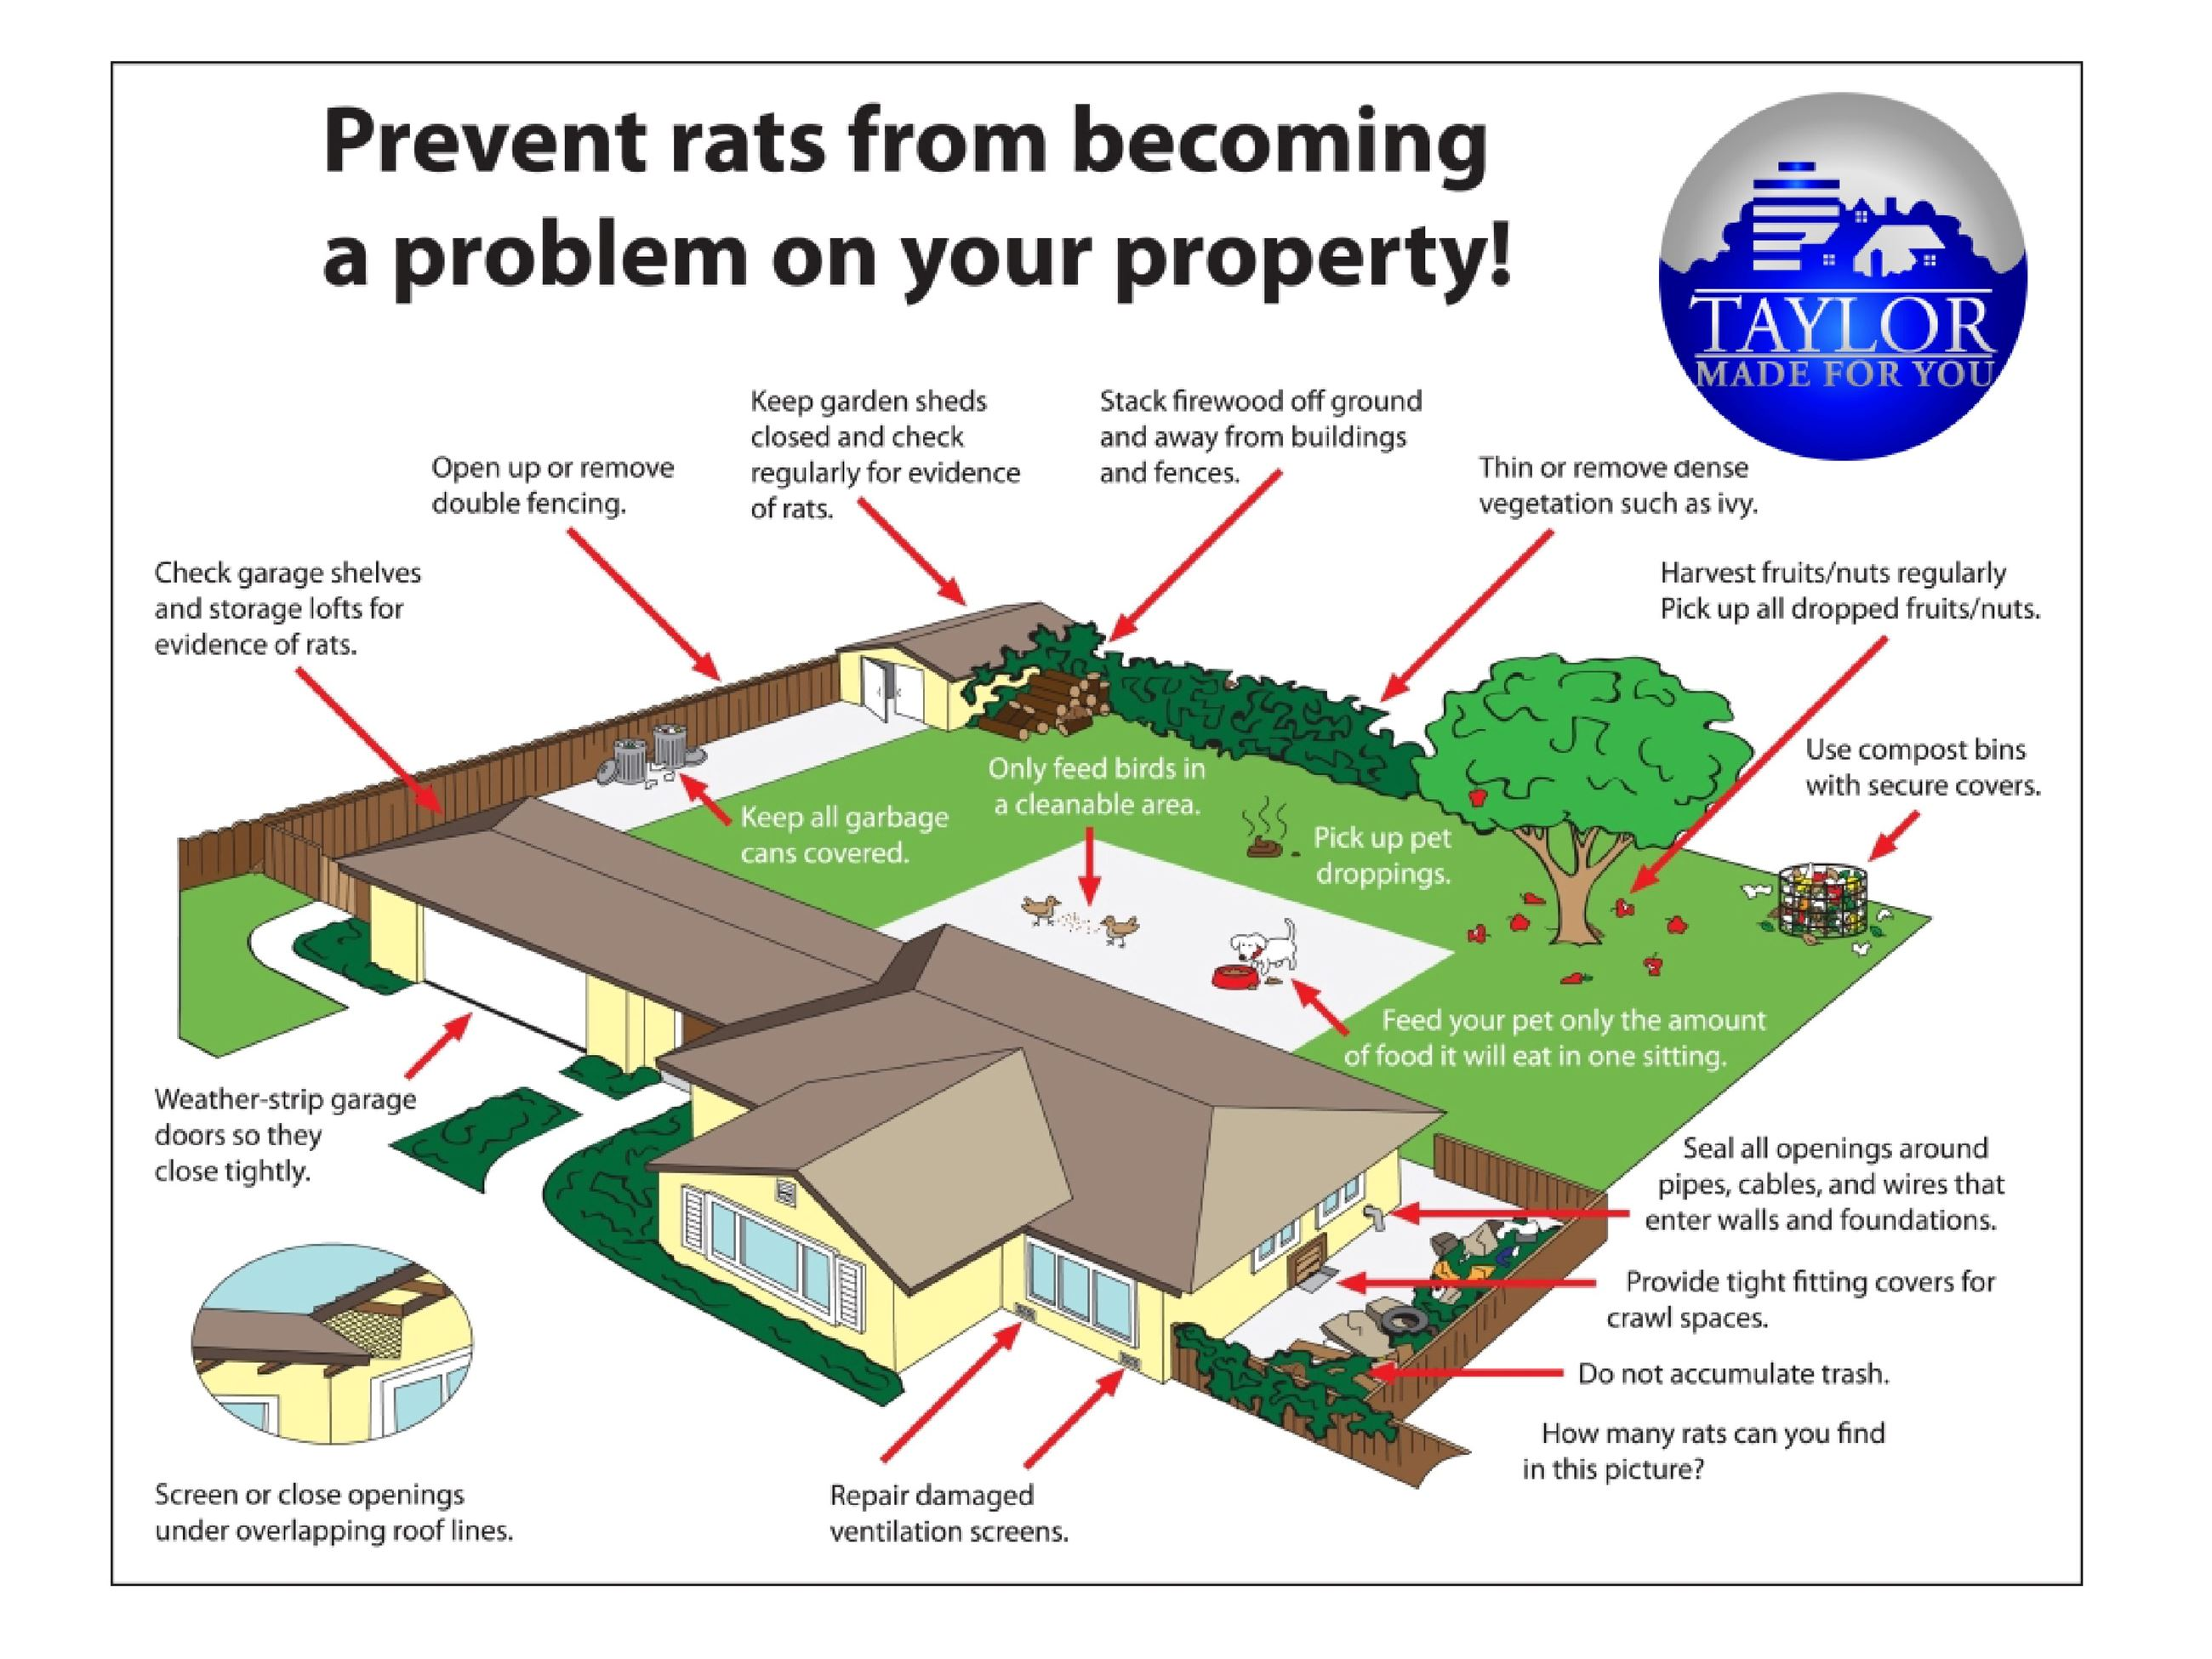 Rat Prevention in Taylor